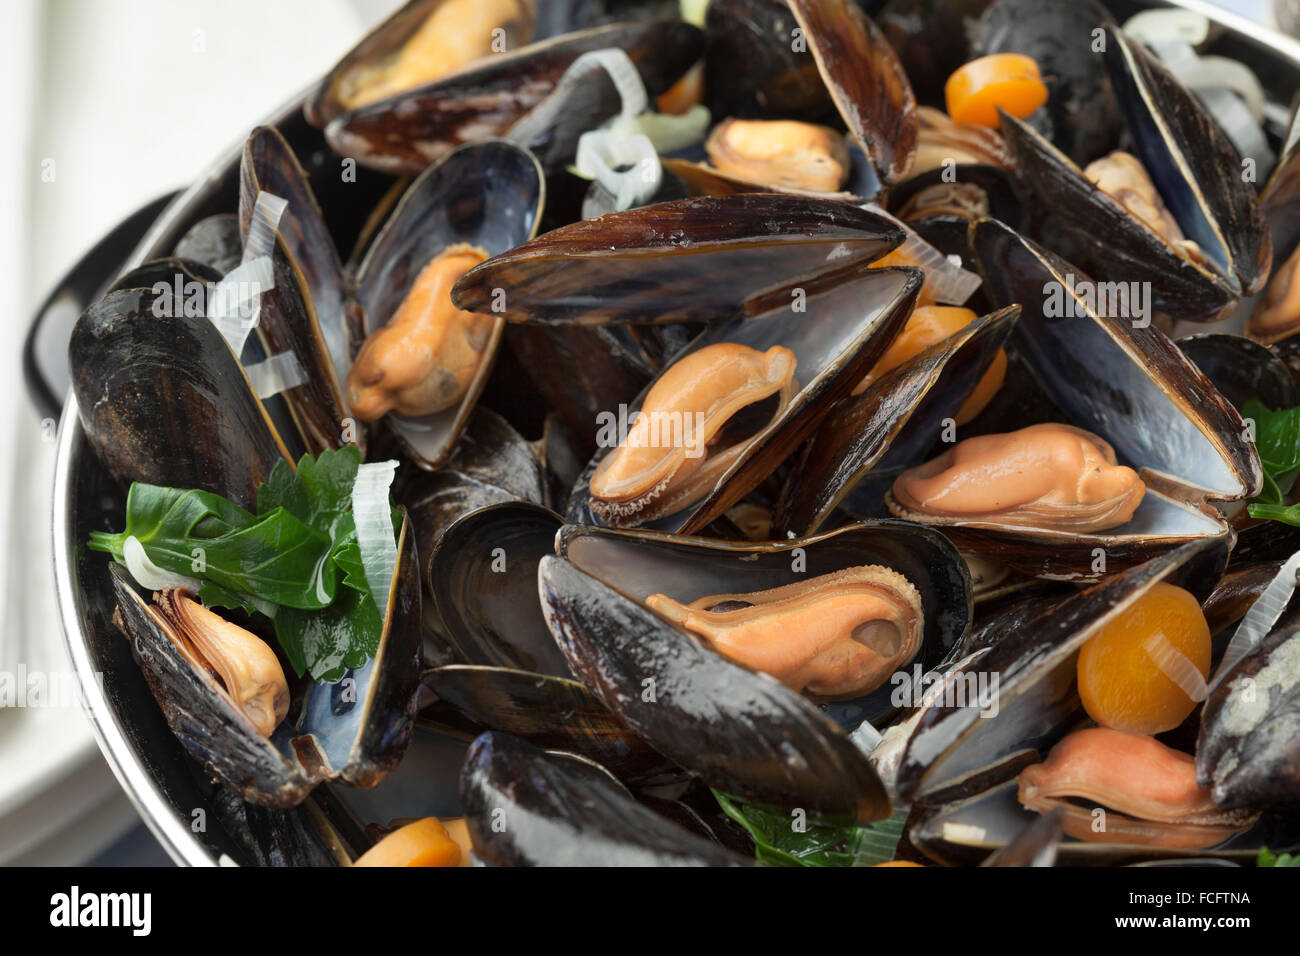 Pan with fresh cooked mussels close up - Stock Image